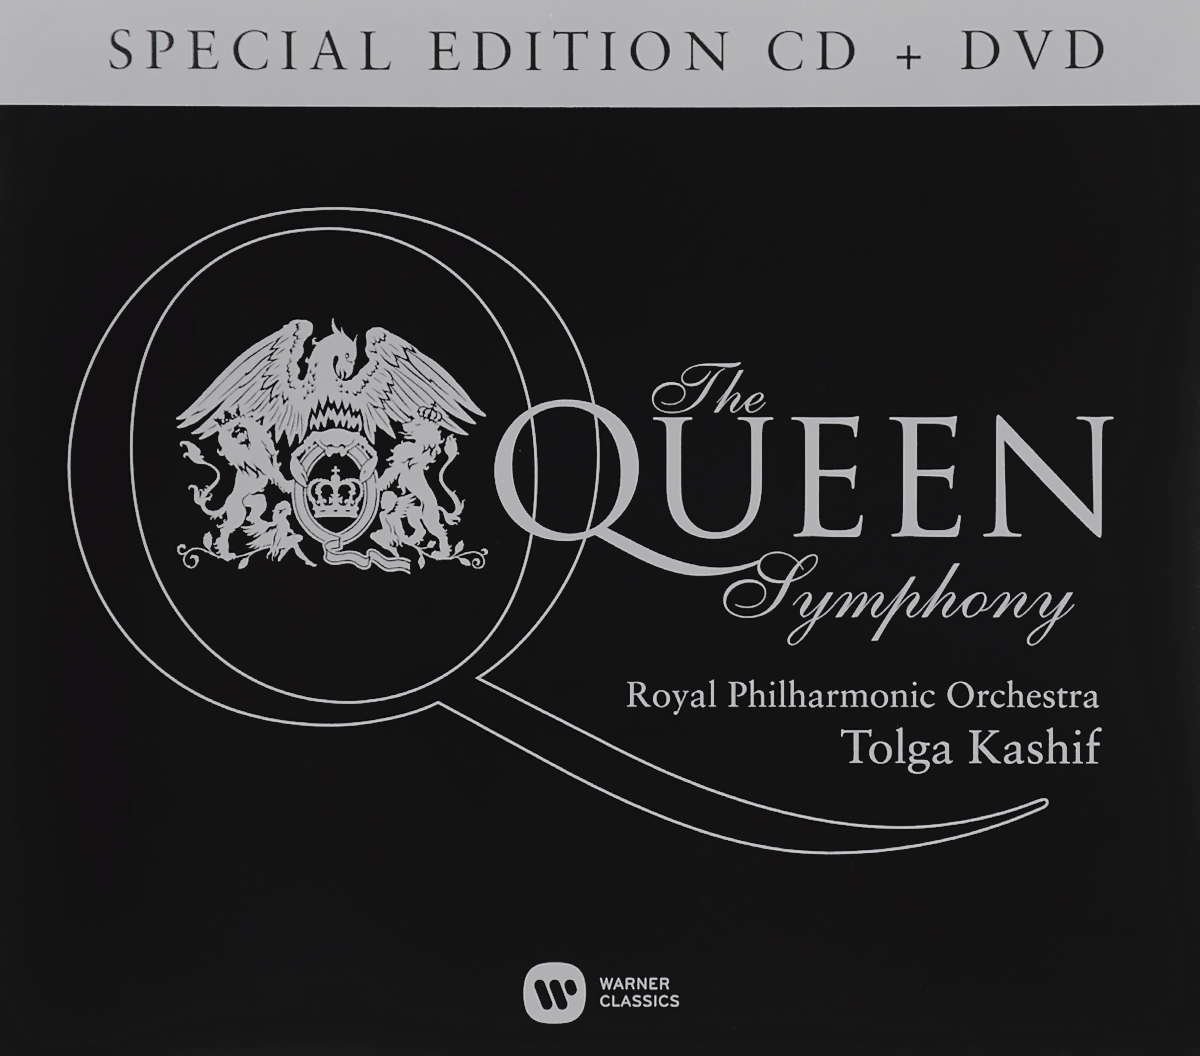 Фото - Толга Кашиф,The Royal Philharmonic Orchestra Tolga Kashif. The Queen Symphony. Special Edition (CD + DVD) six tudor queens jane seymour the haunter queen